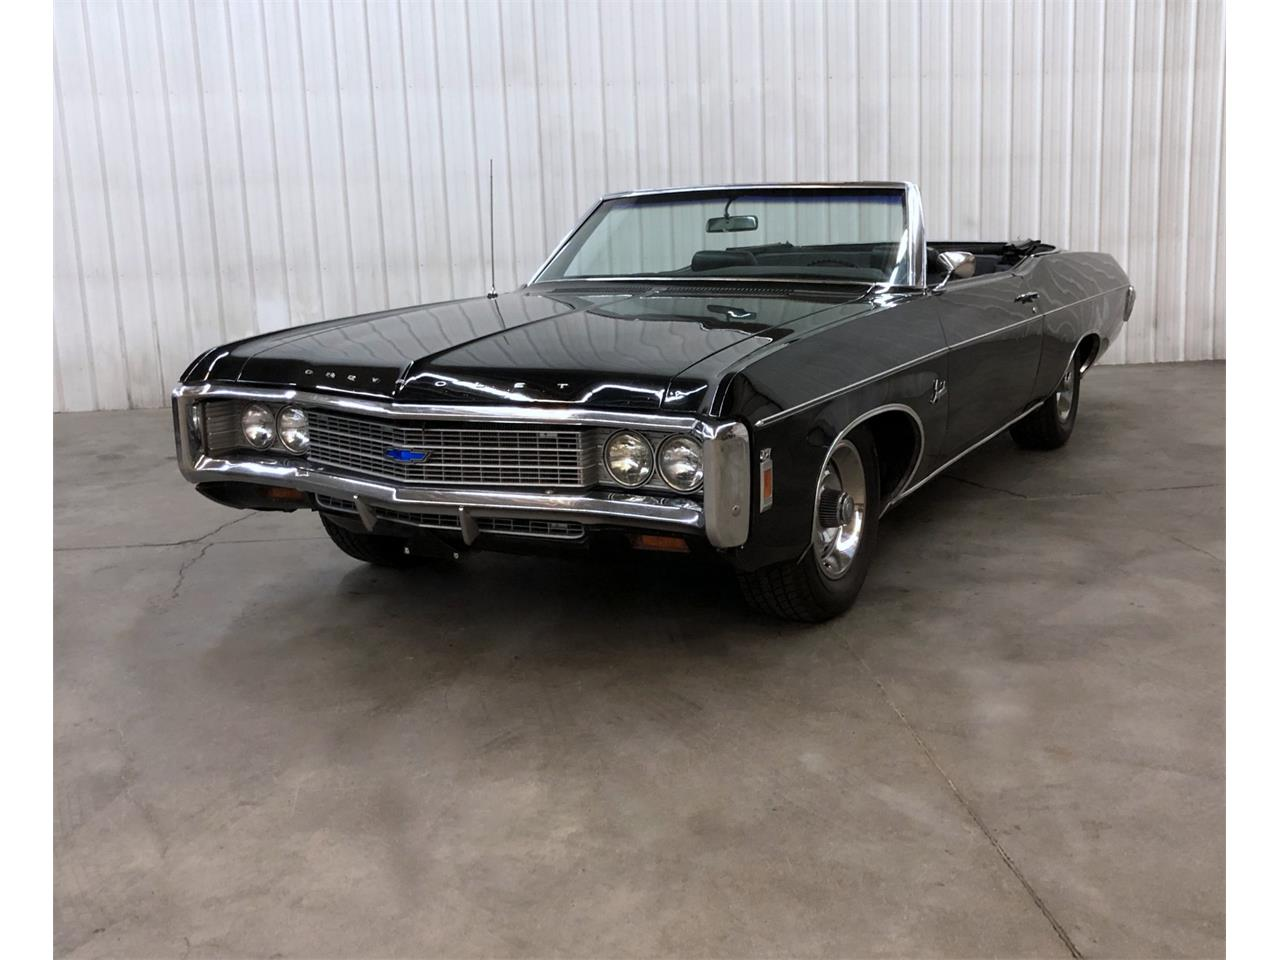 1969 Chevrolet Impala (CC-1321760) for sale in Maple Lake, Minnesota